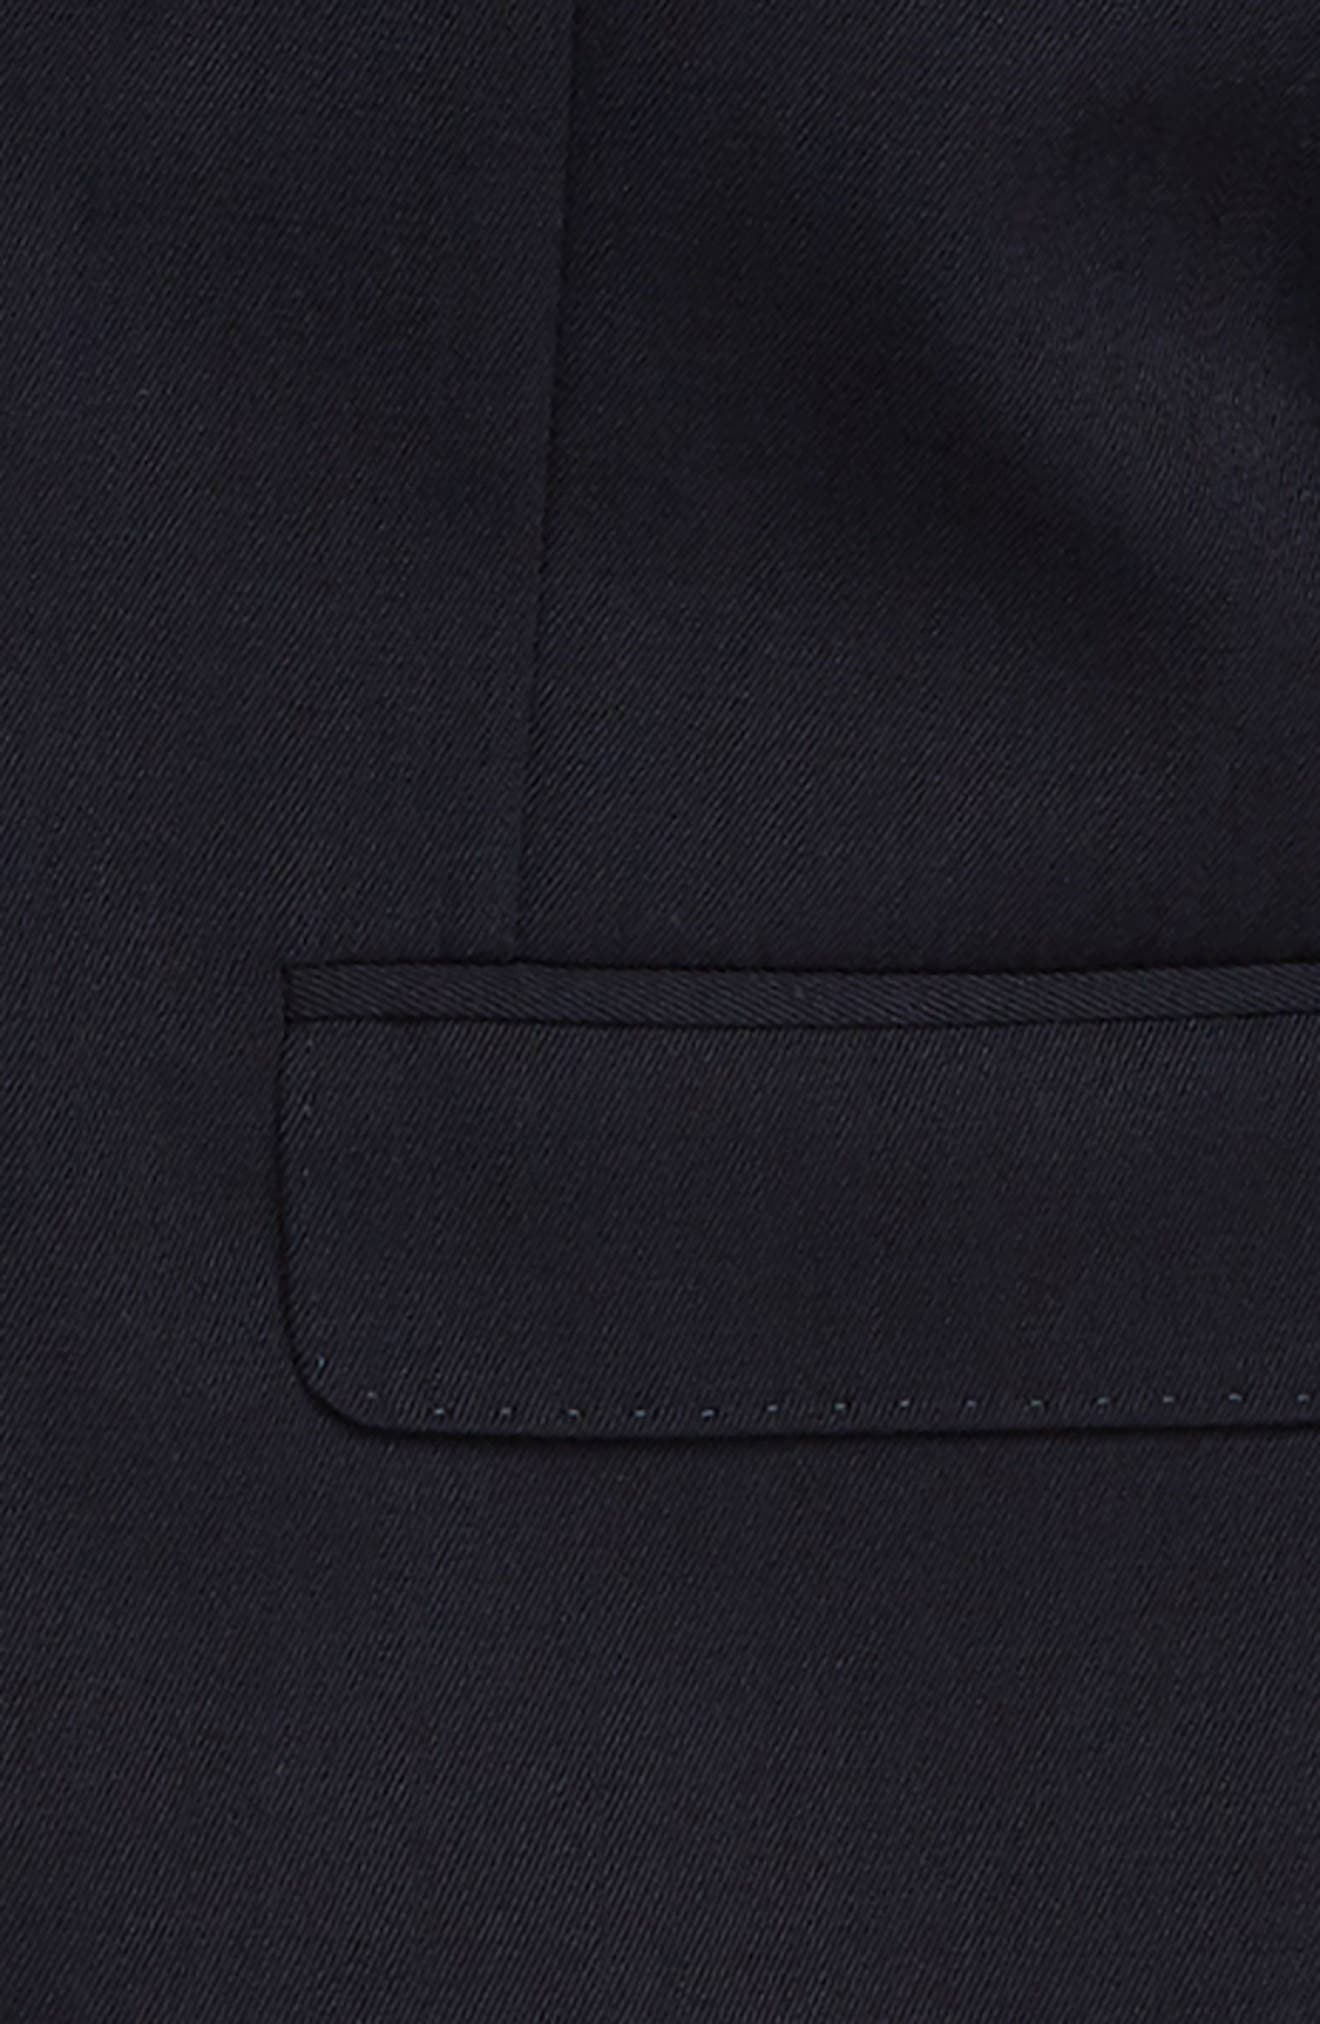 Ludlow Two-Button Wool Blazer,                             Alternate thumbnail 2, color,                             NAVY